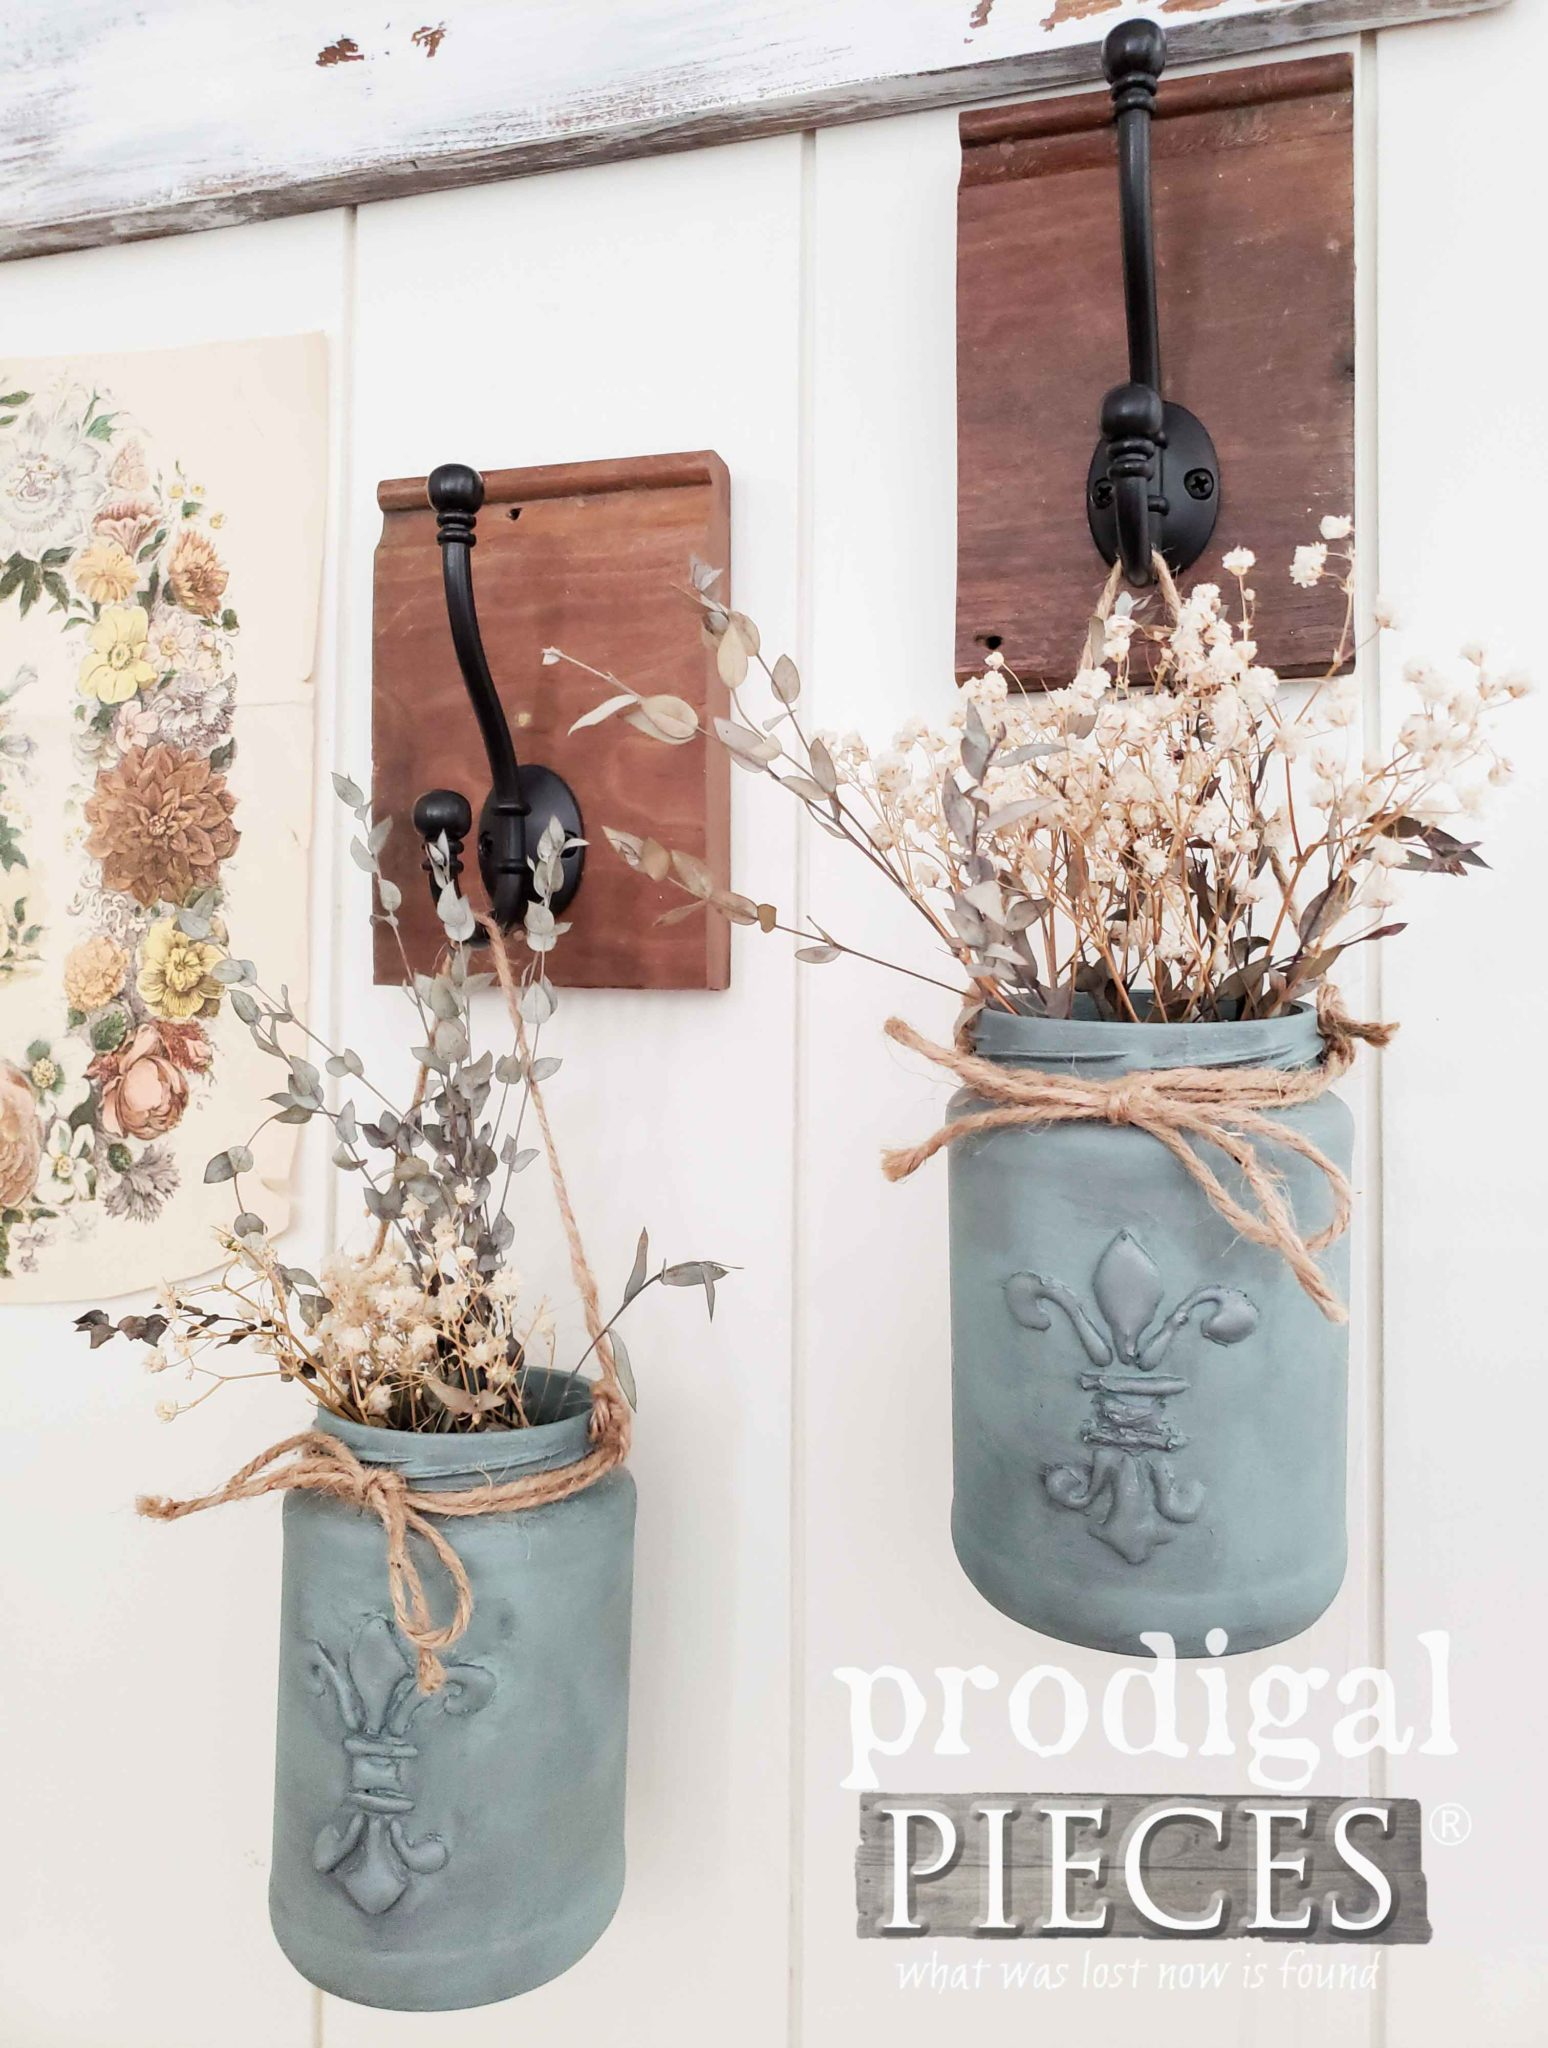 Rustic Chic Jar Hangers Made from Repurposed Finds by Larissa of Prodigal Pieces | prodigalpieces.com